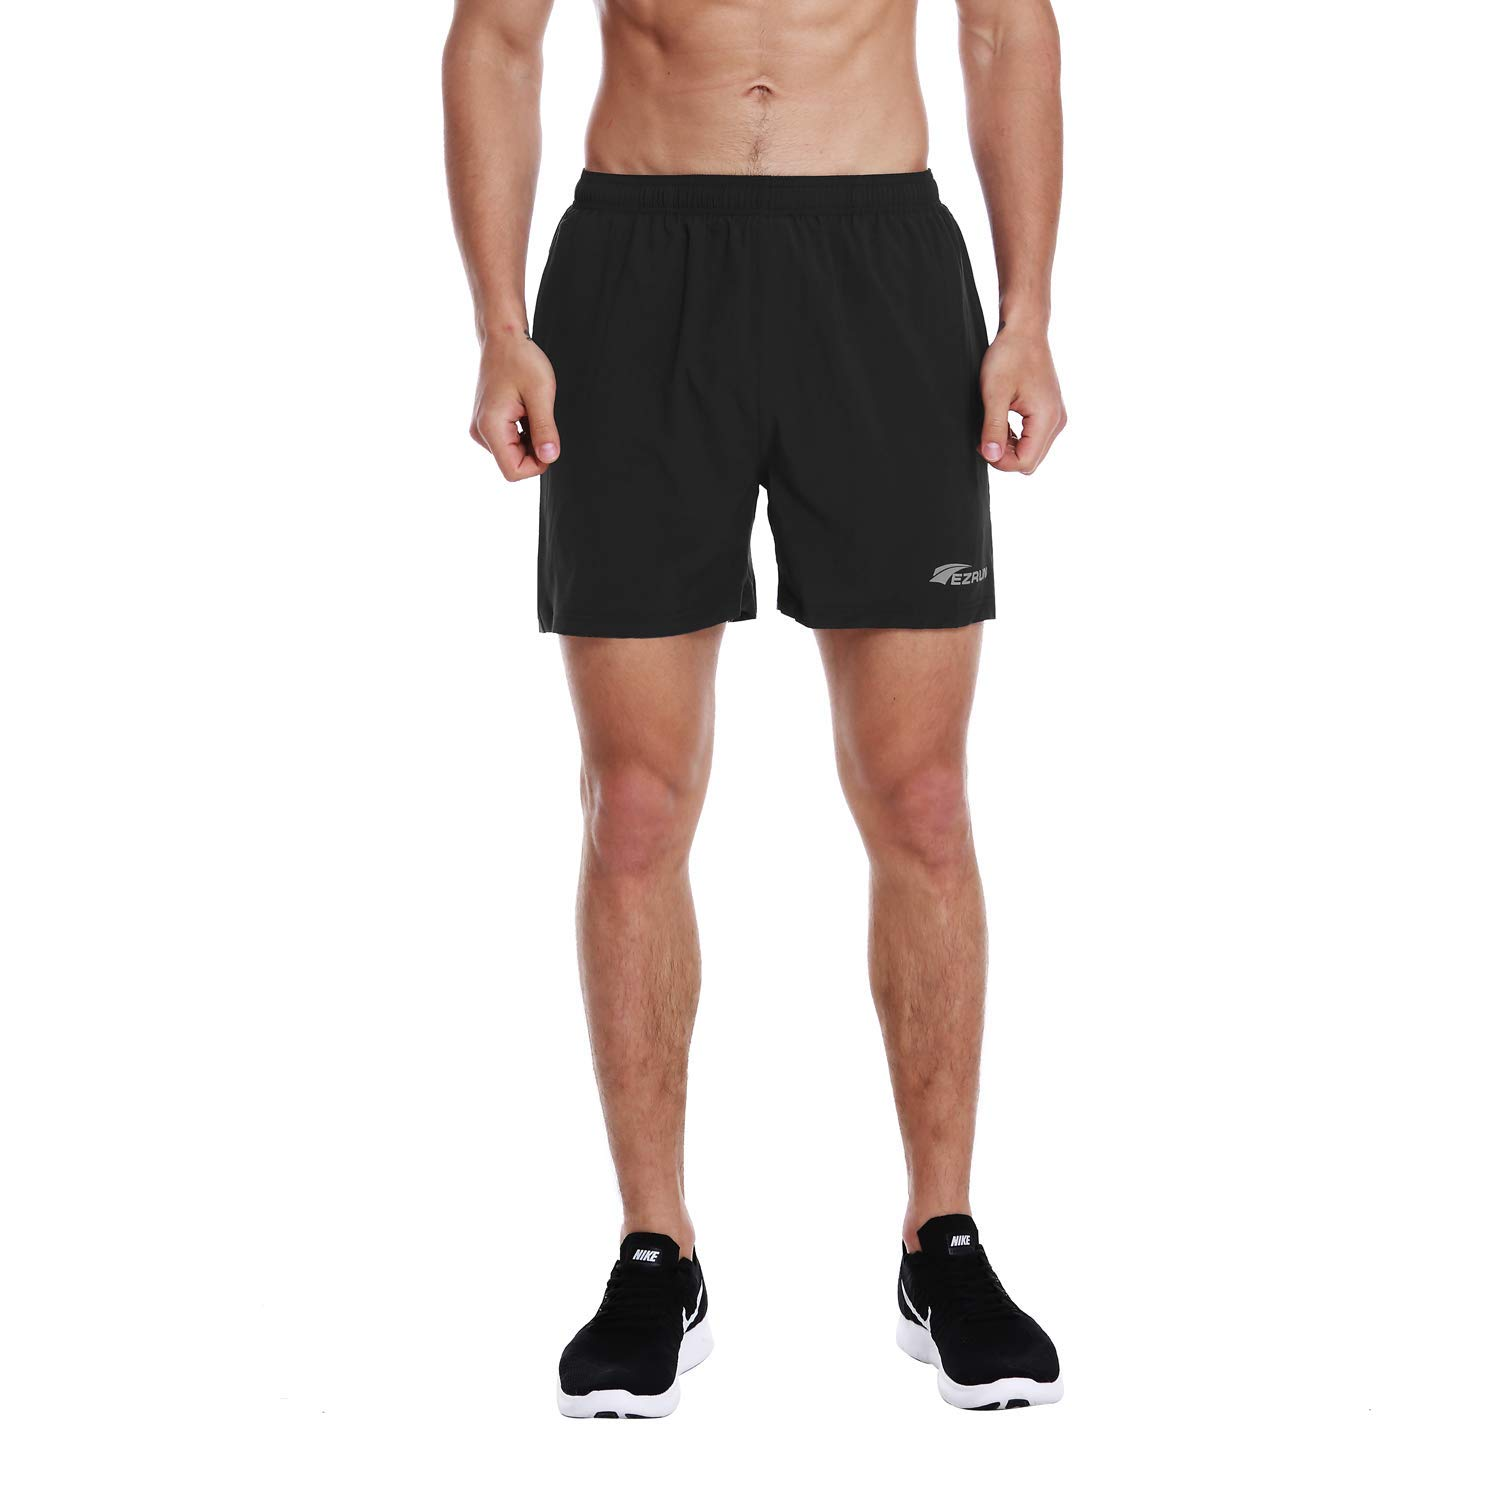 EZRUN Men's 5 Inches Running Workout Shorts Quick Dry Lightweight Athletic Shorts with Liner Zipper Pockets,Black,XXL by EZRUN